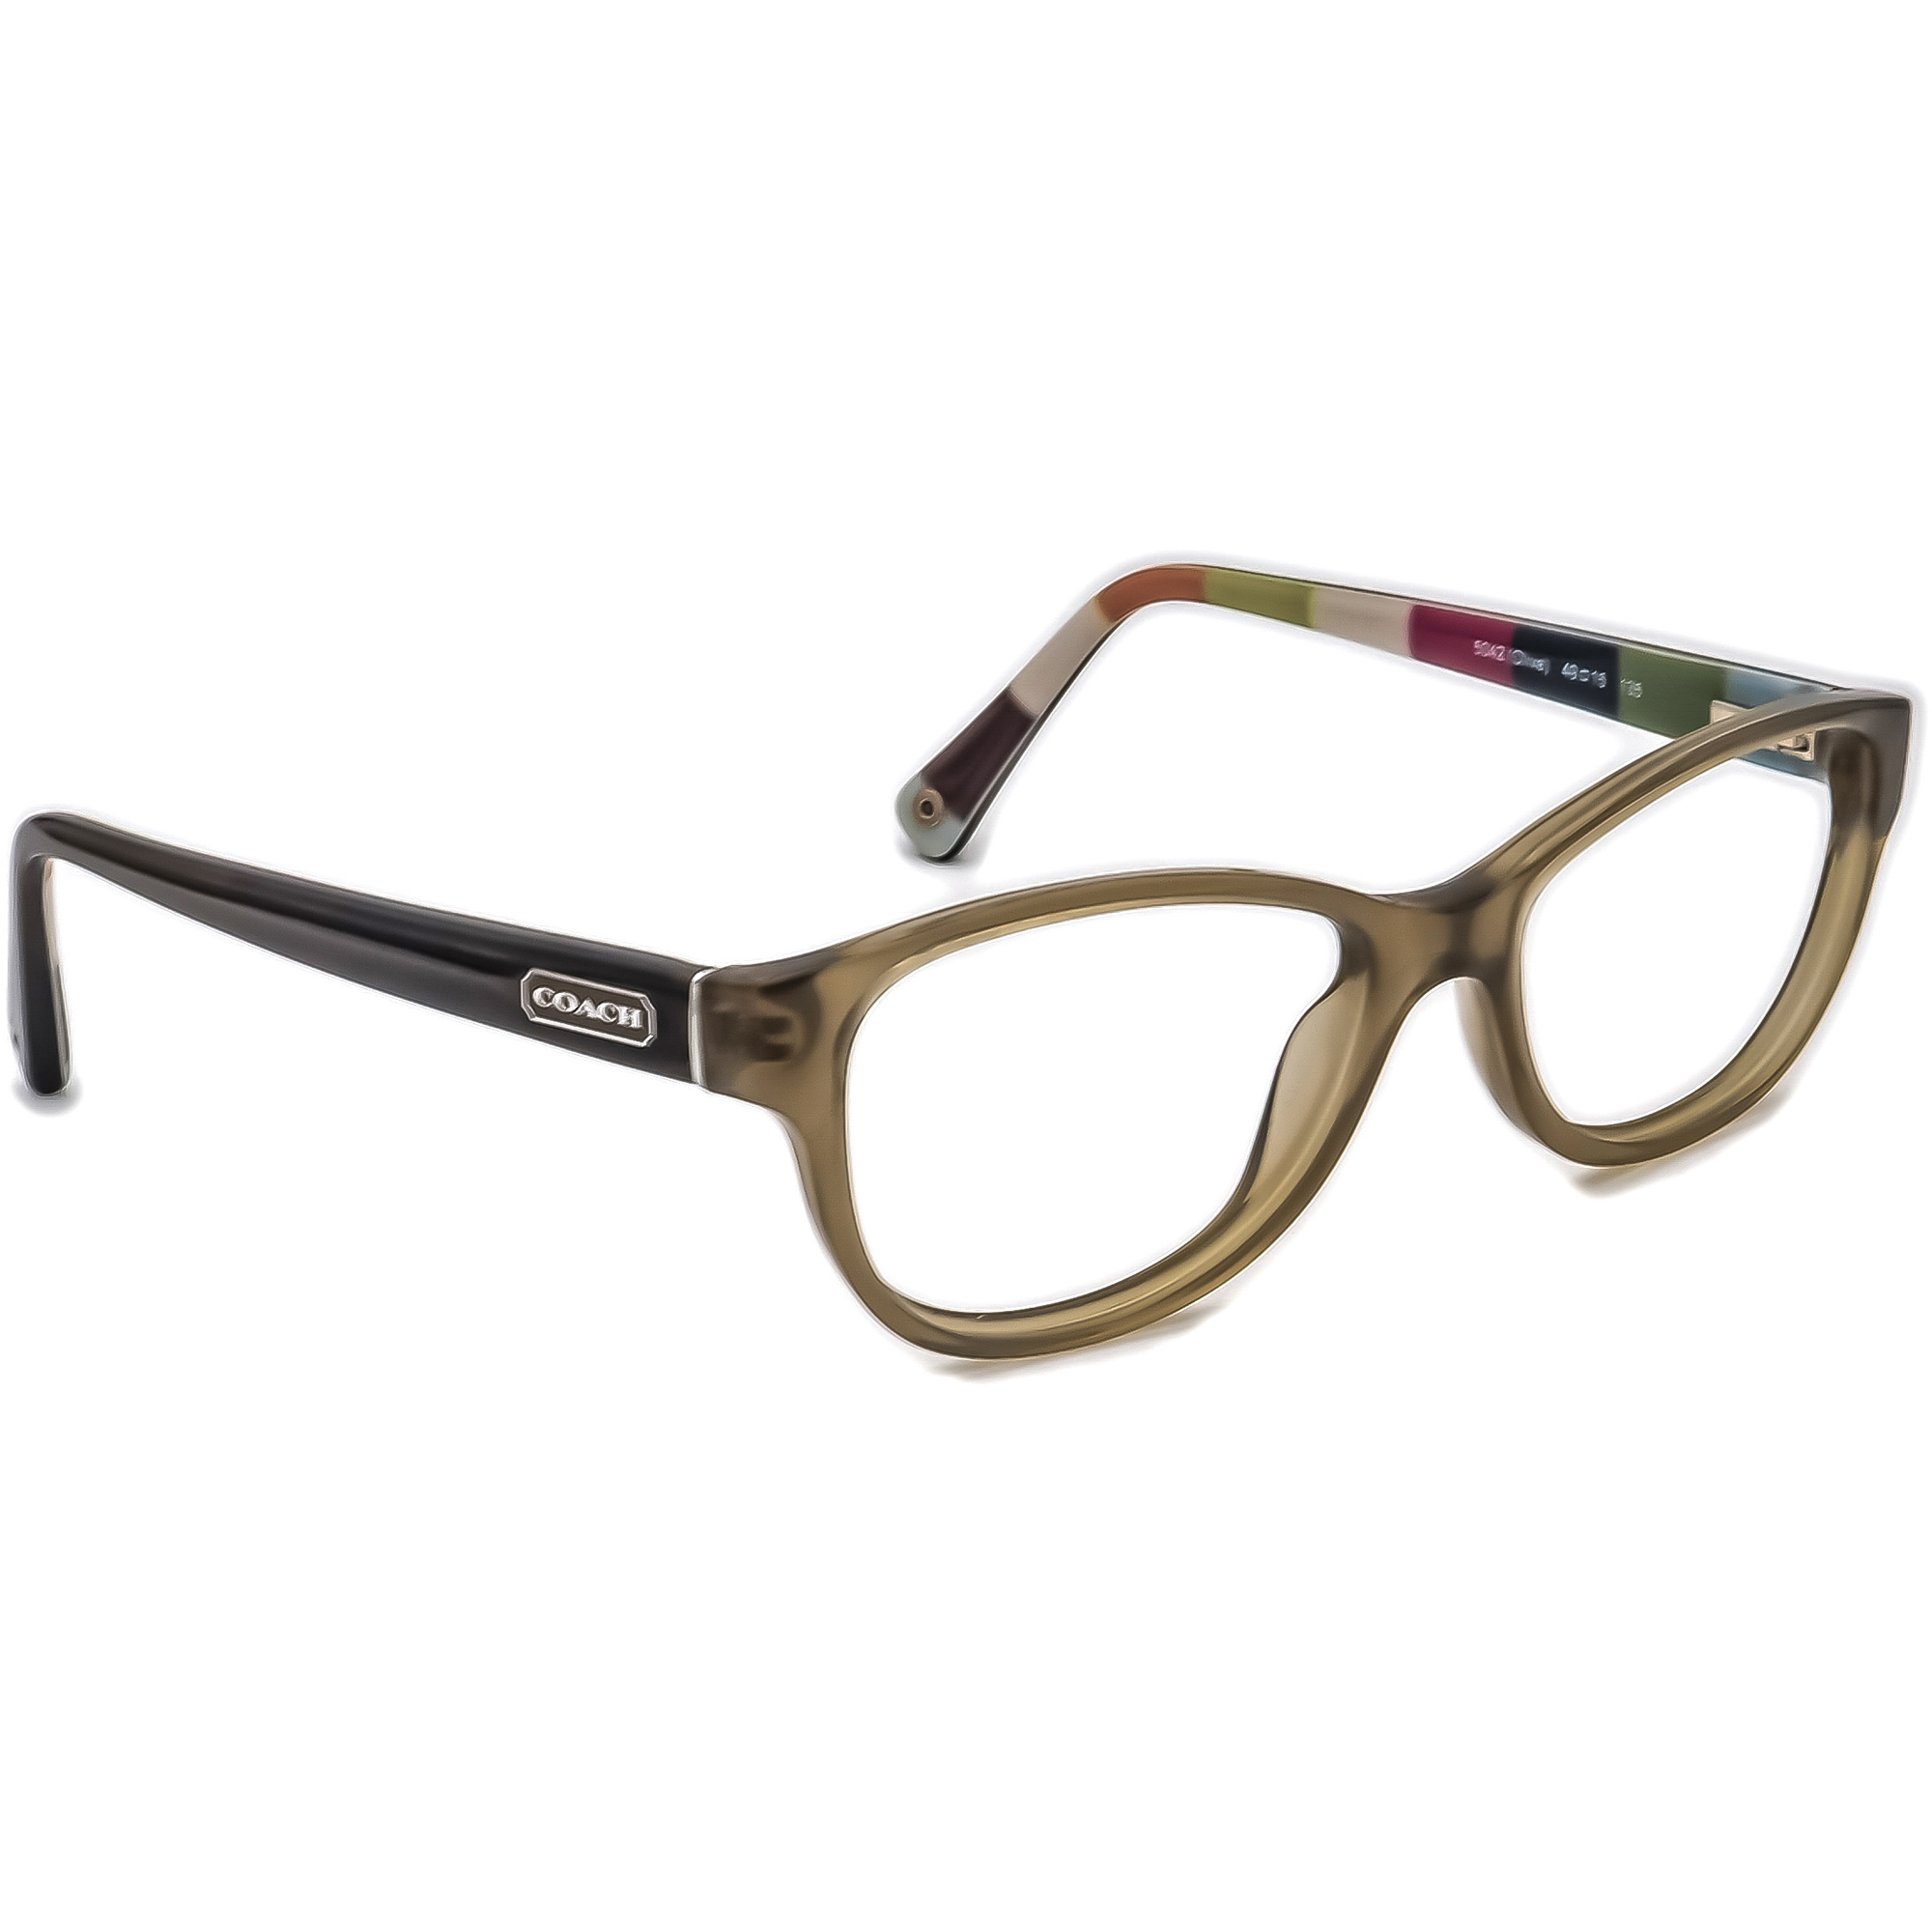 Coach HC 6012 (Dakota) 5042 Eyeglasses